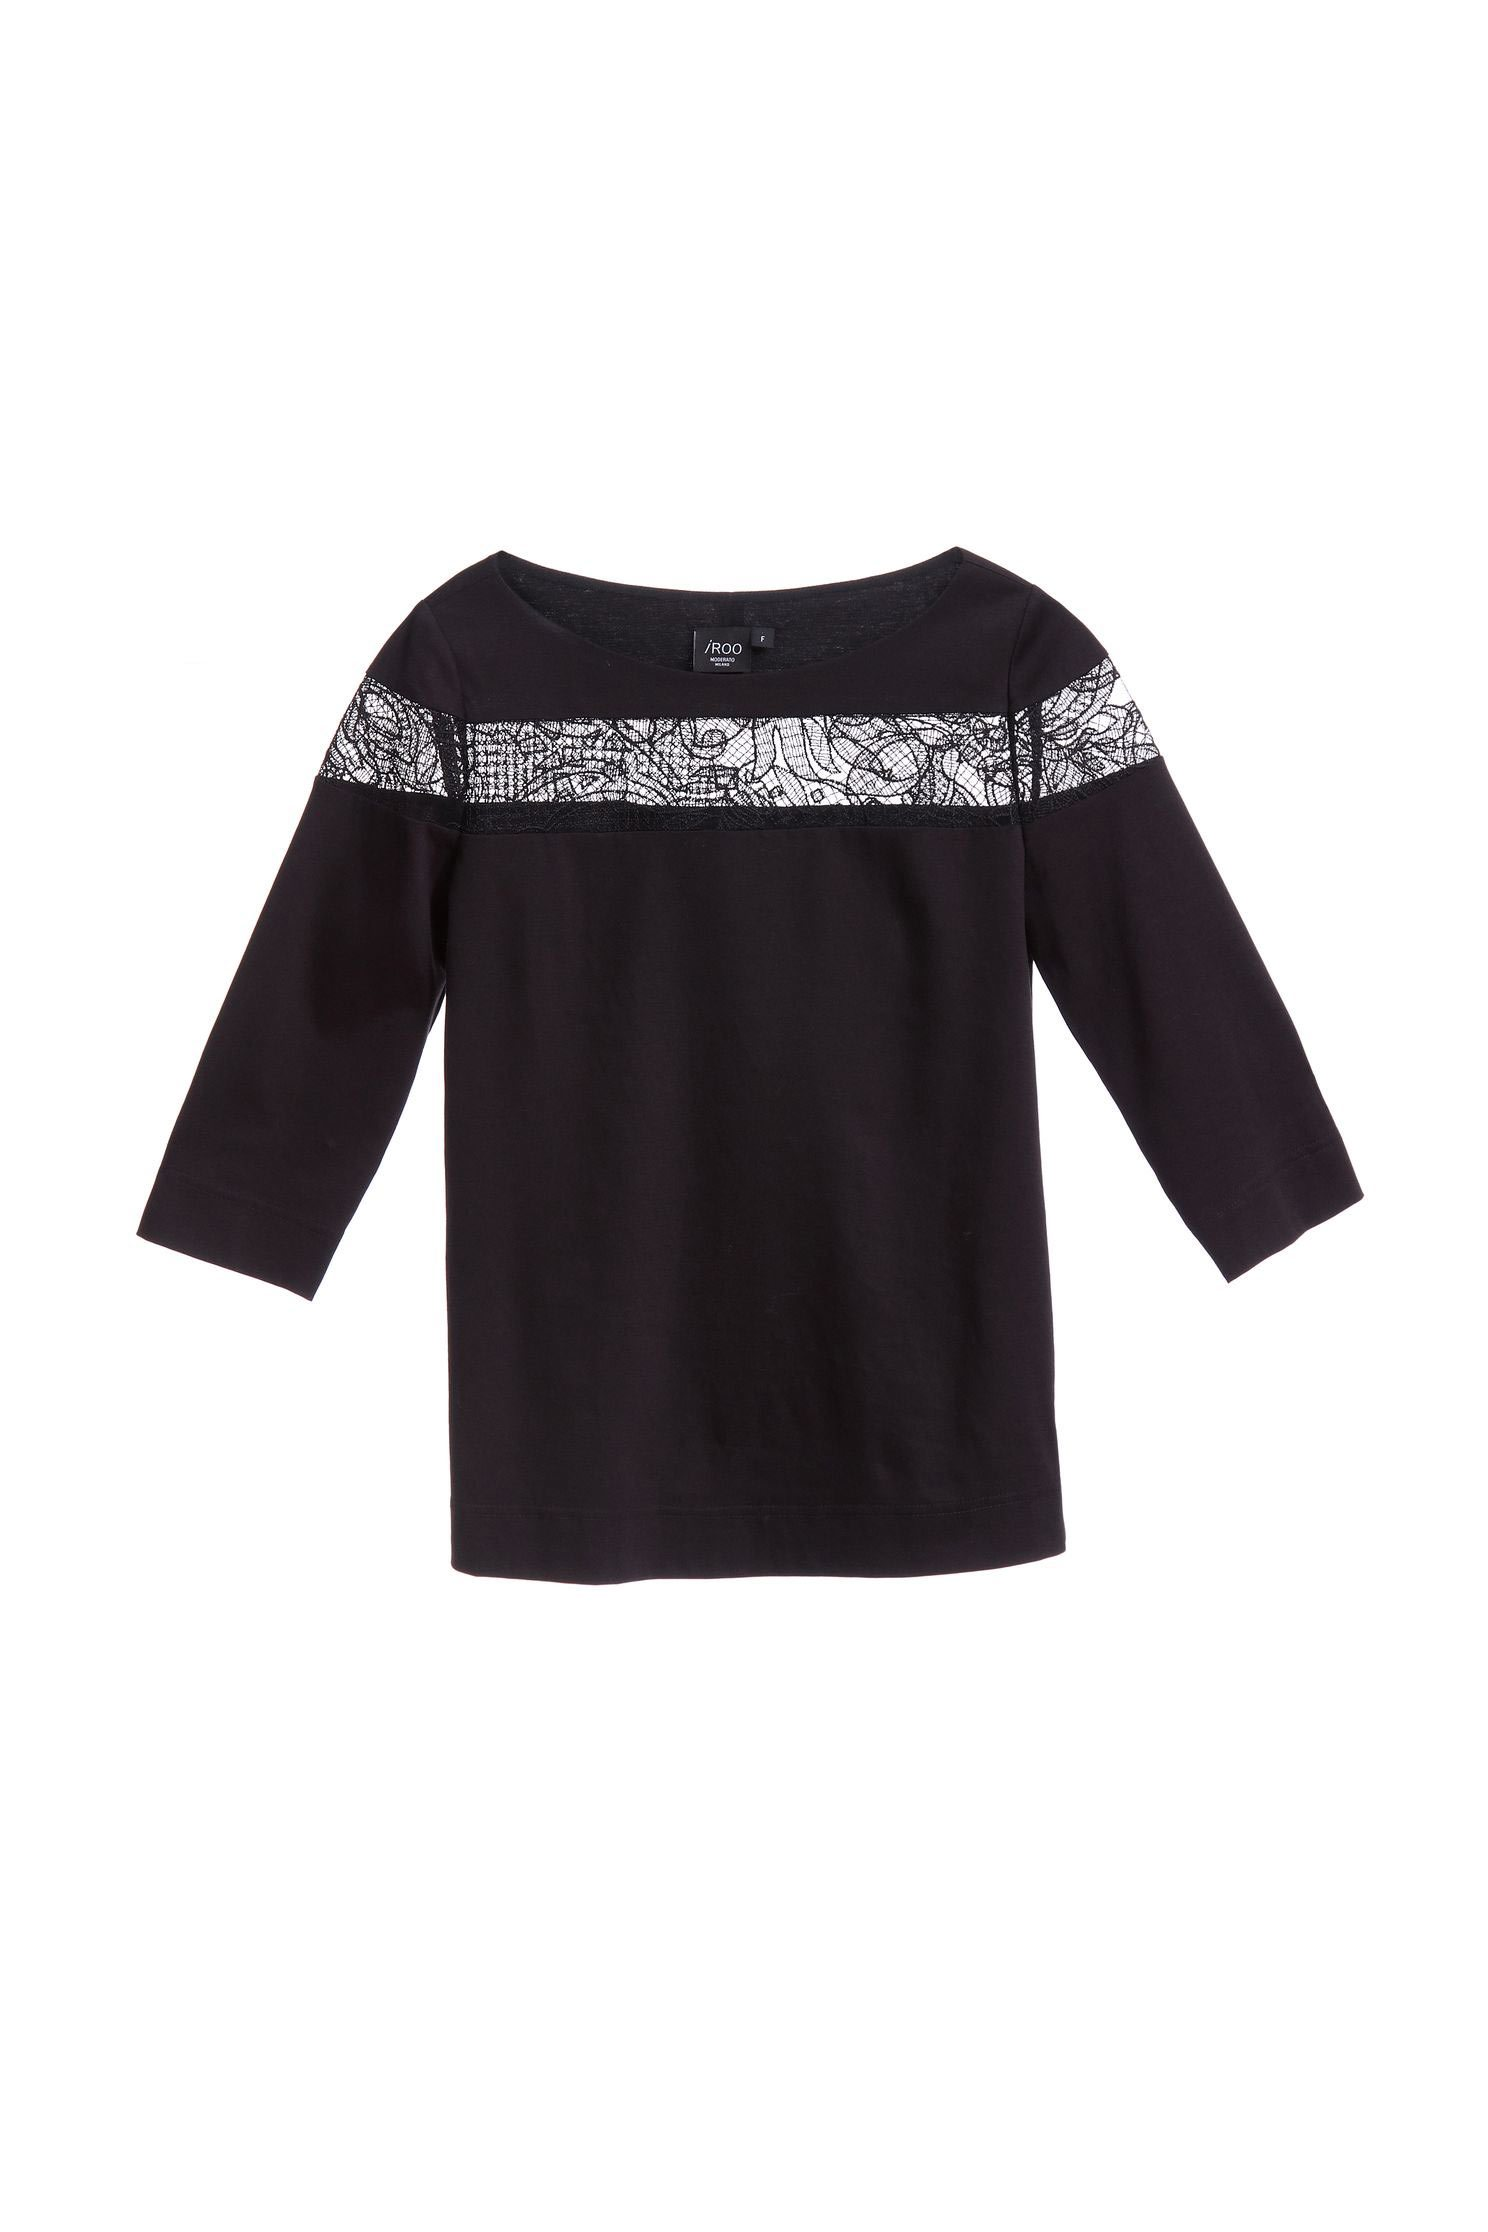 Lace stitching classic design long-sleeved top